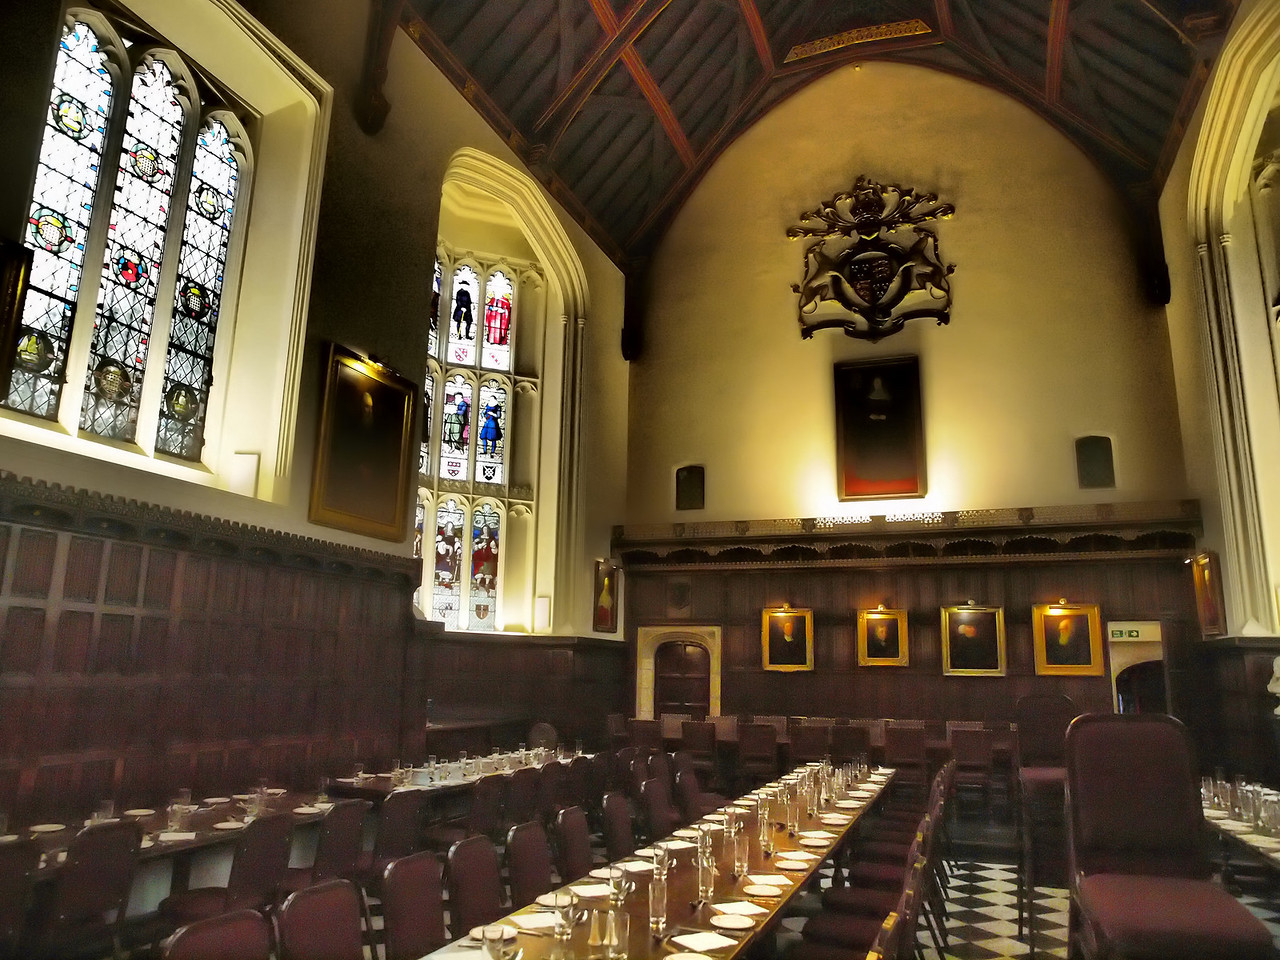 A dining hall in one of the Cambridge colleges.